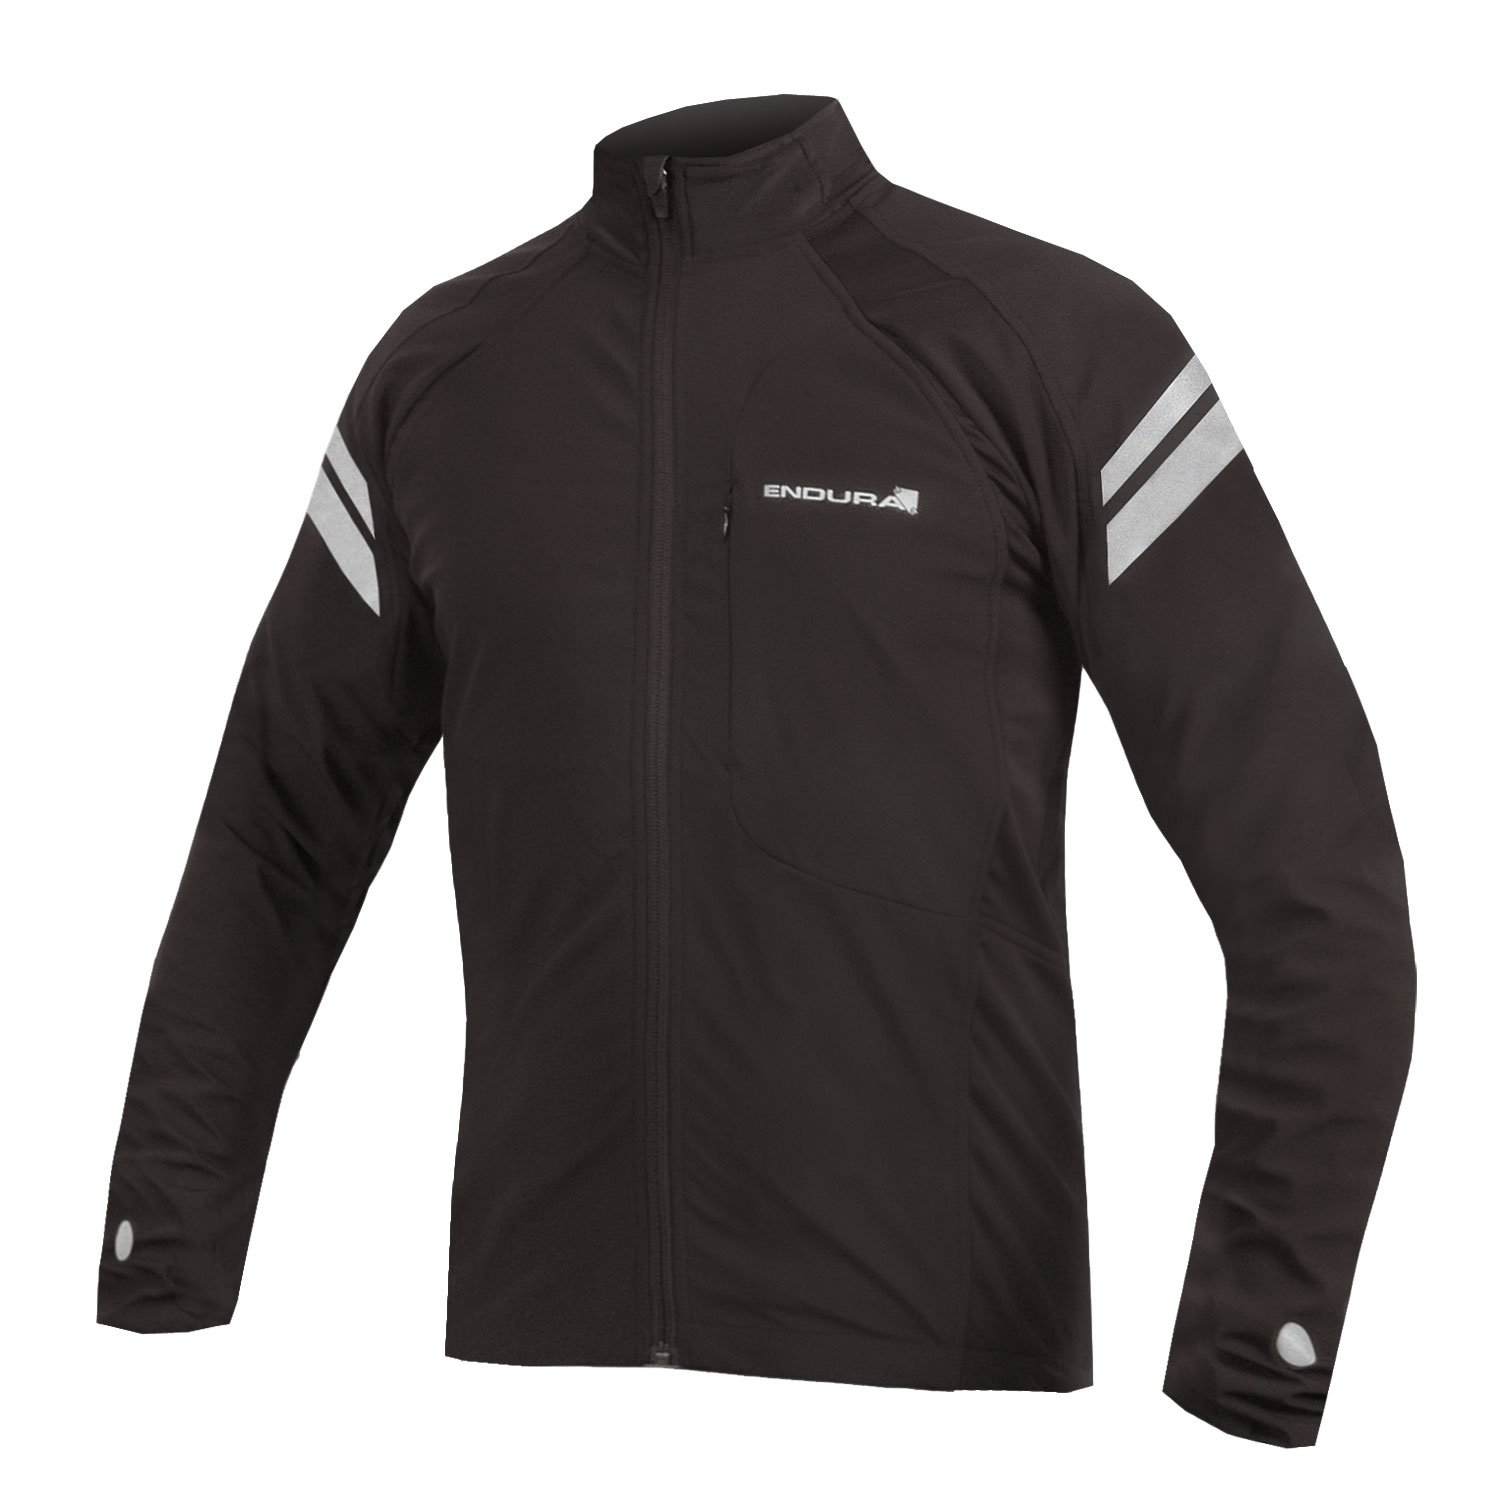 Endura Windchill II Cycling Jacket Black, Large by Endura